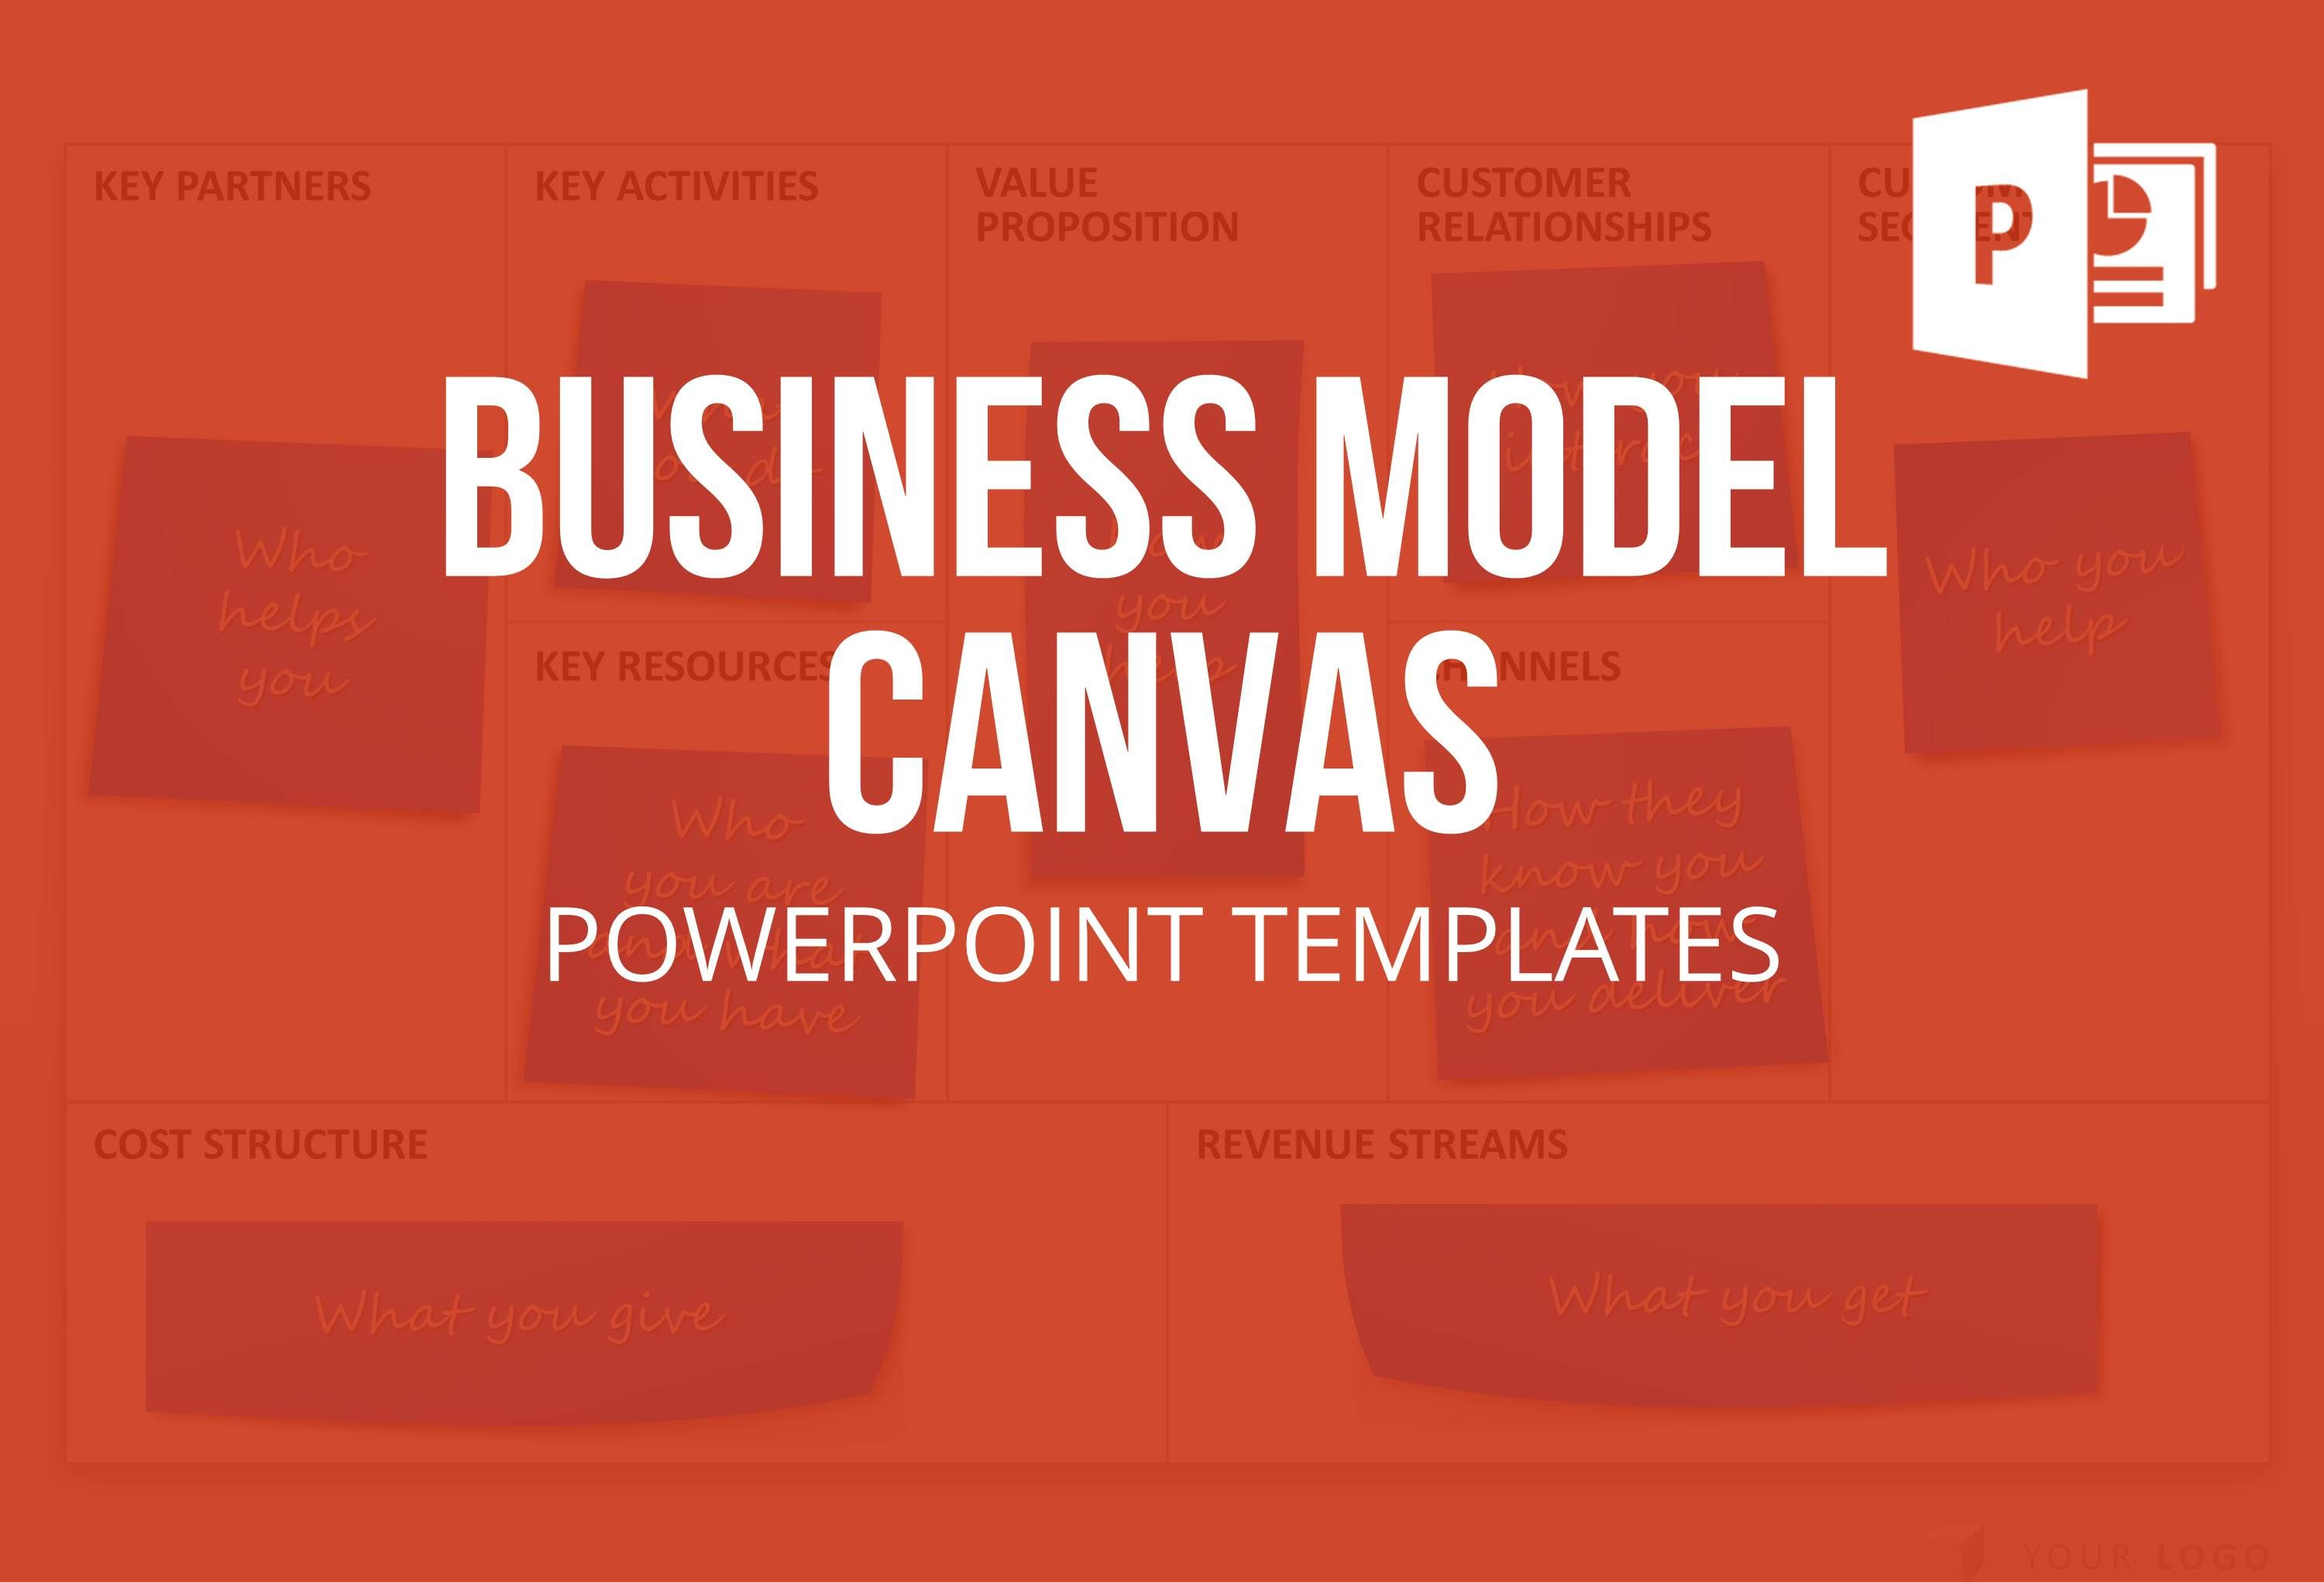 Business model canvas templates bmc for powerpoint for the business model canvas templates bmc for powerpoint for the planning and visualization of the strategic development of new and existing business models friedricerecipe Choice Image